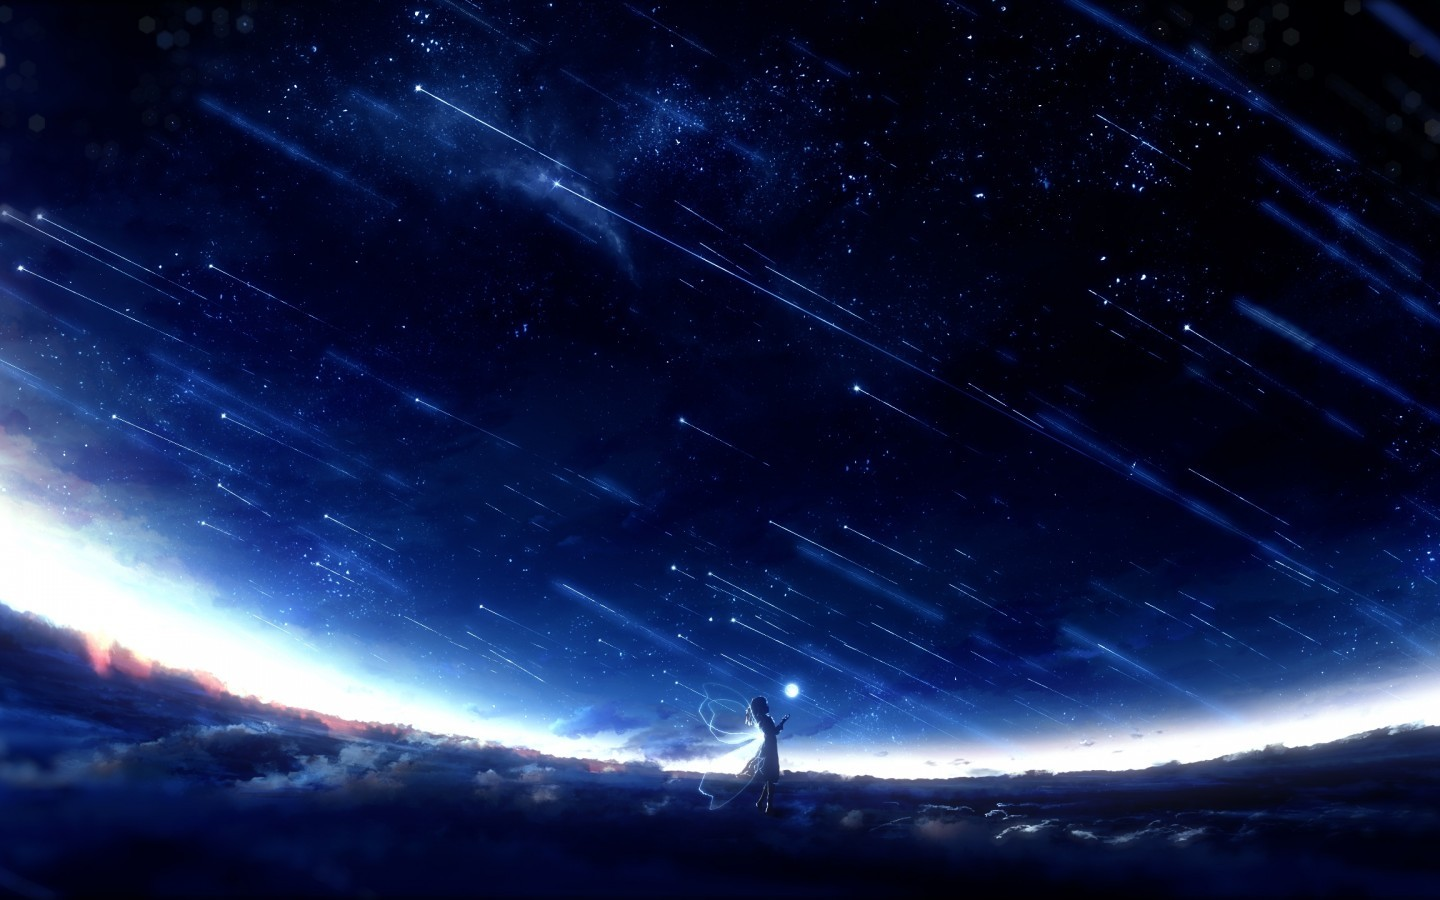 Anime Fairy Girl Wings Beyond The Clouds Falling Art Anime